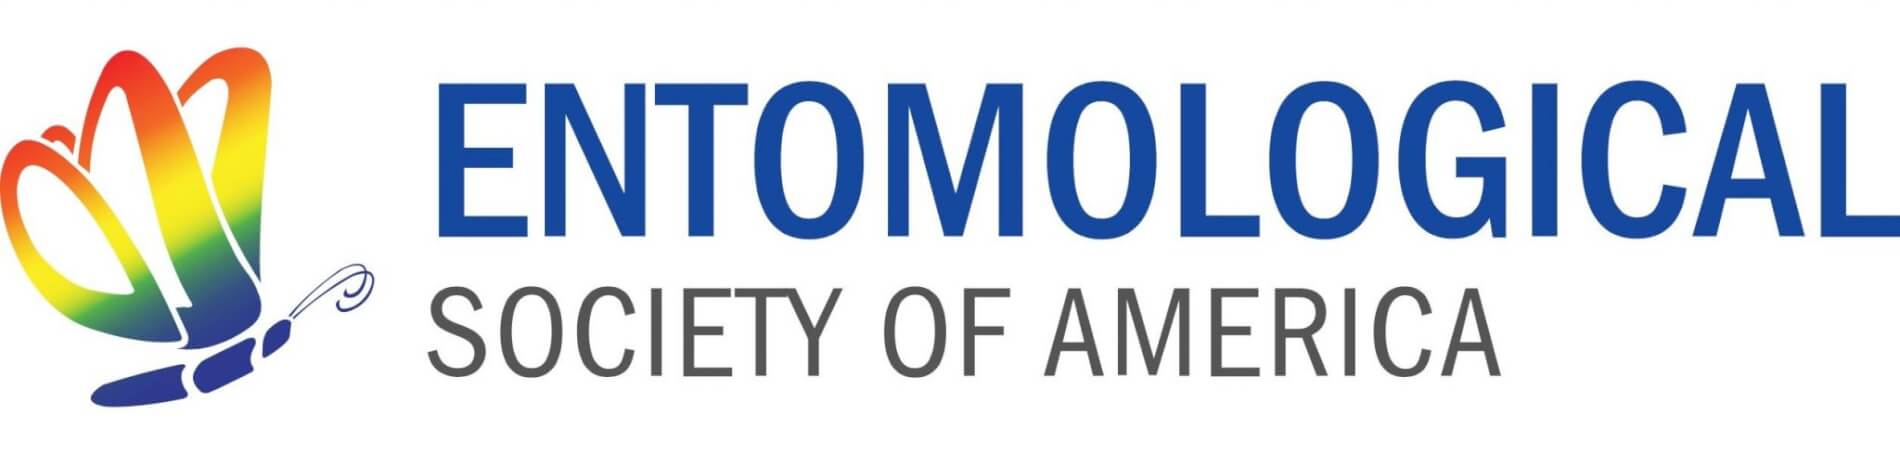 Entomological Society Of America Pestco